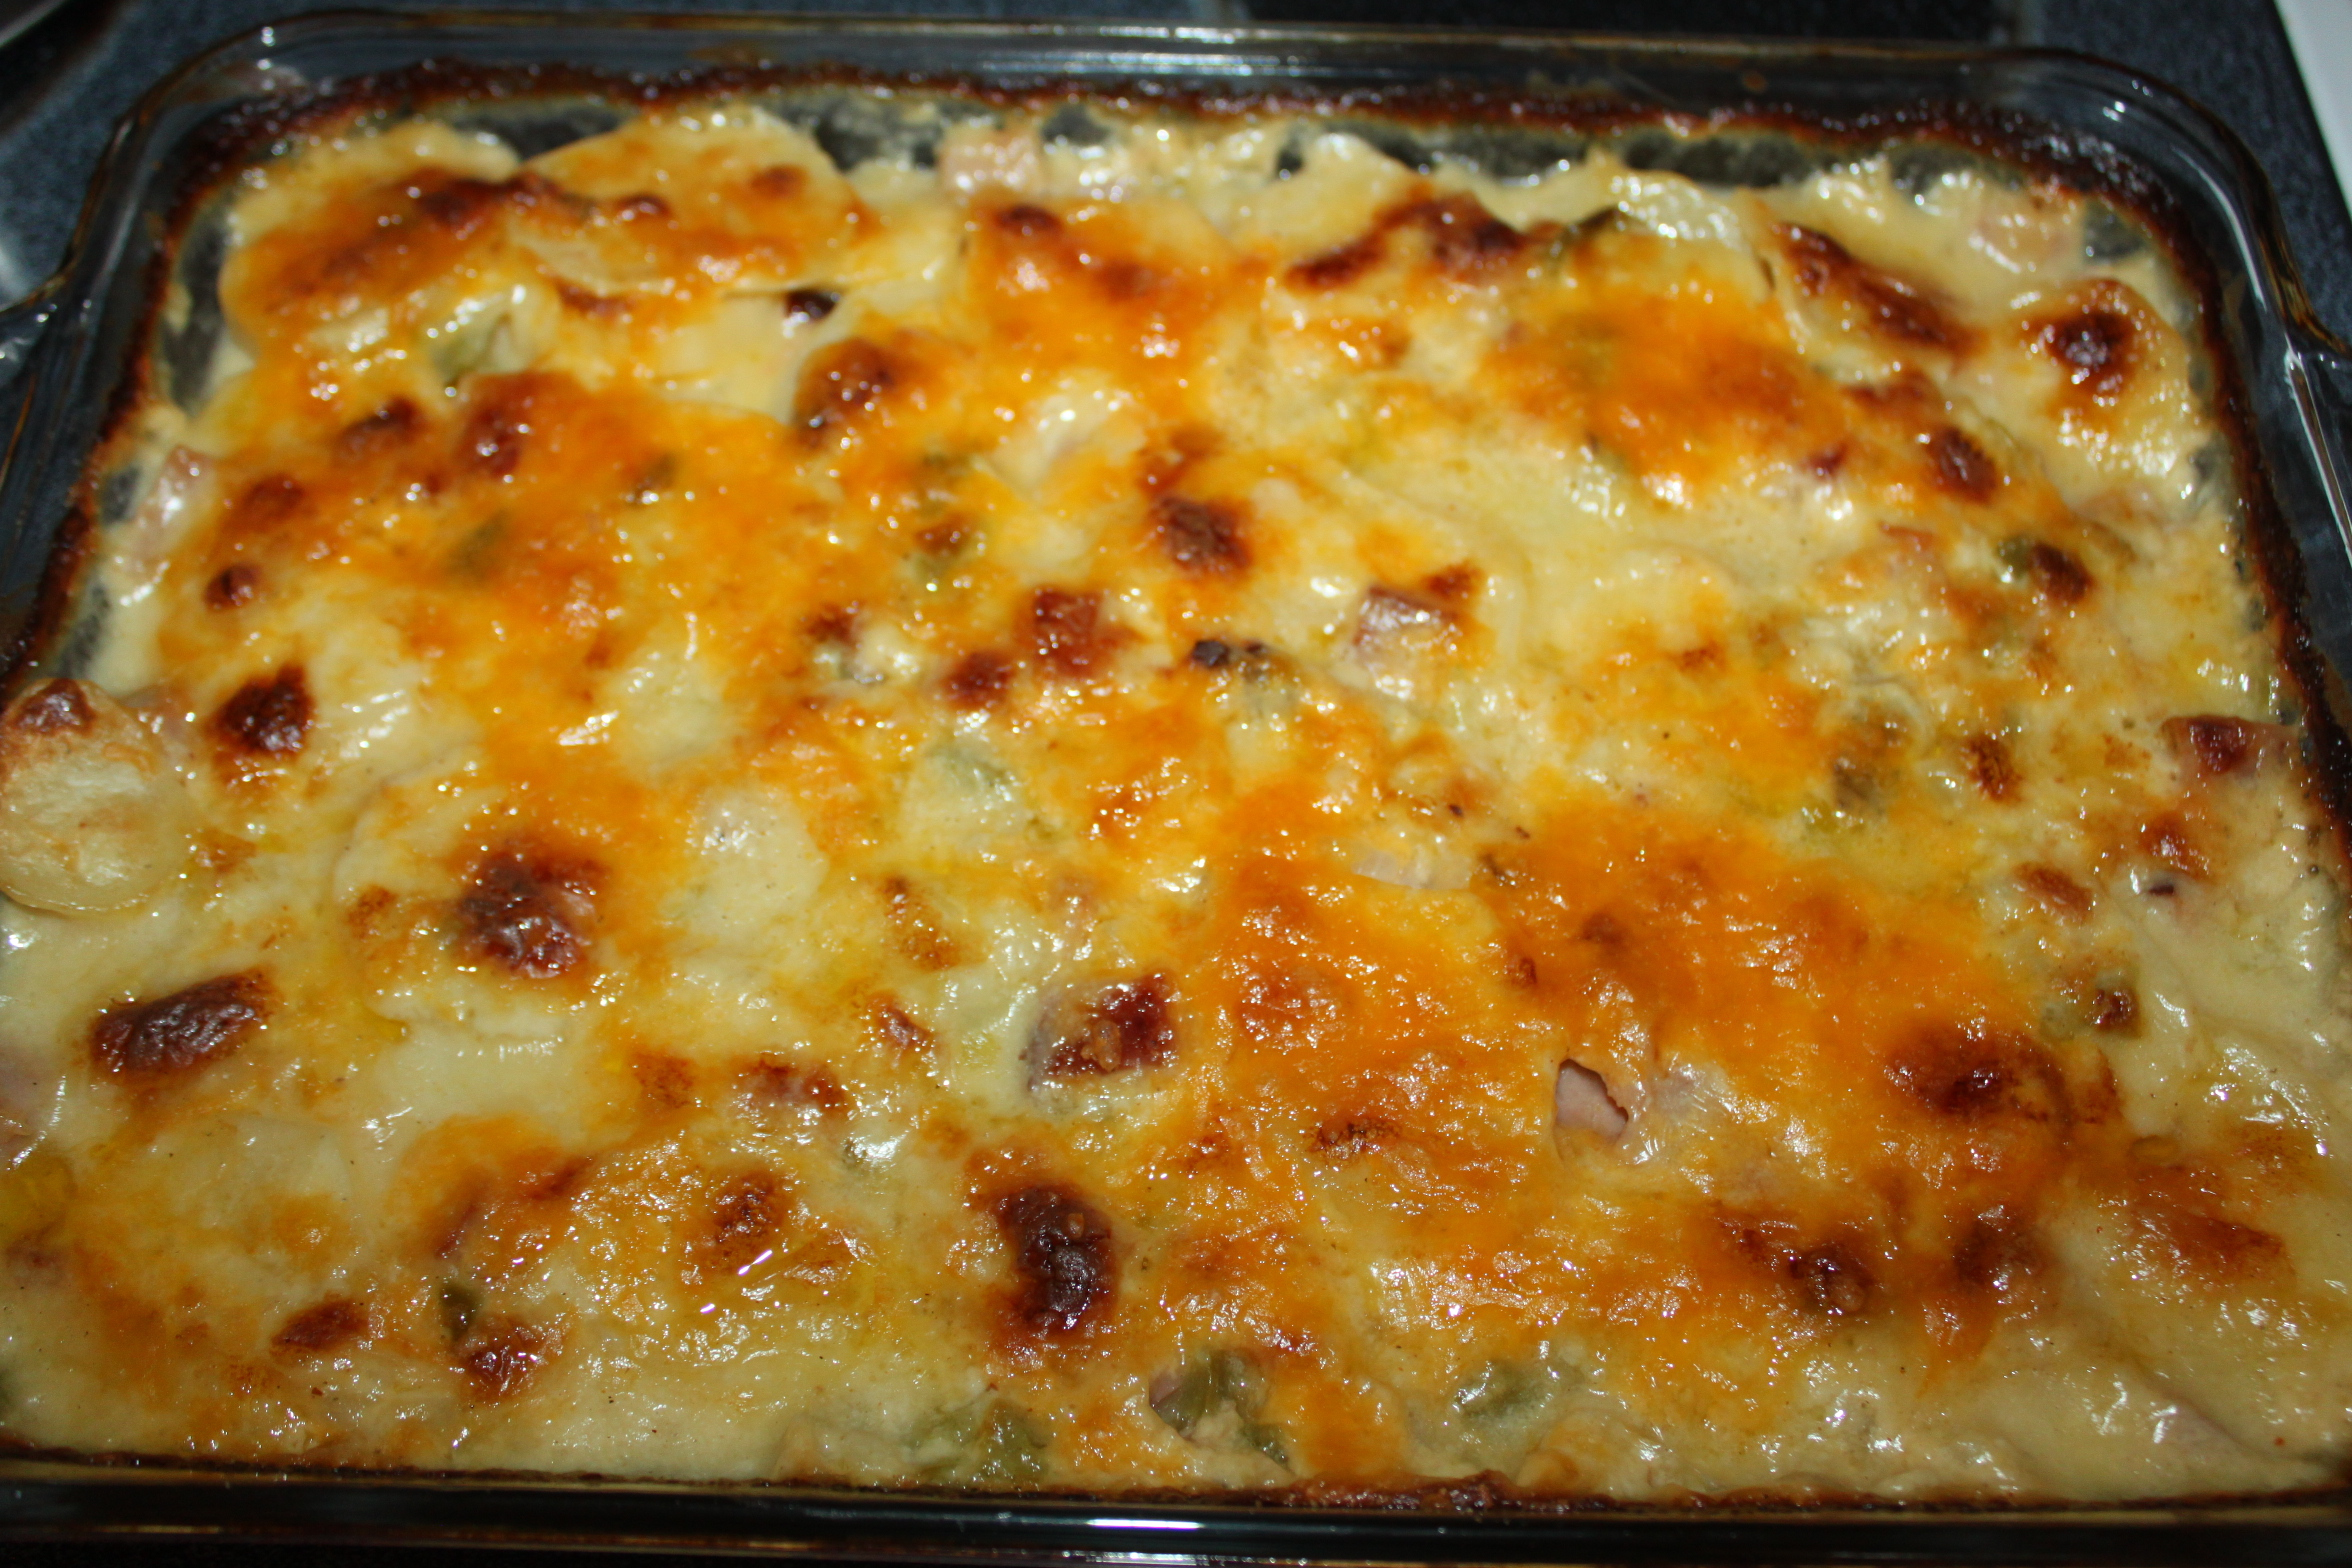 Classic scalloped potatoes and ham casserole